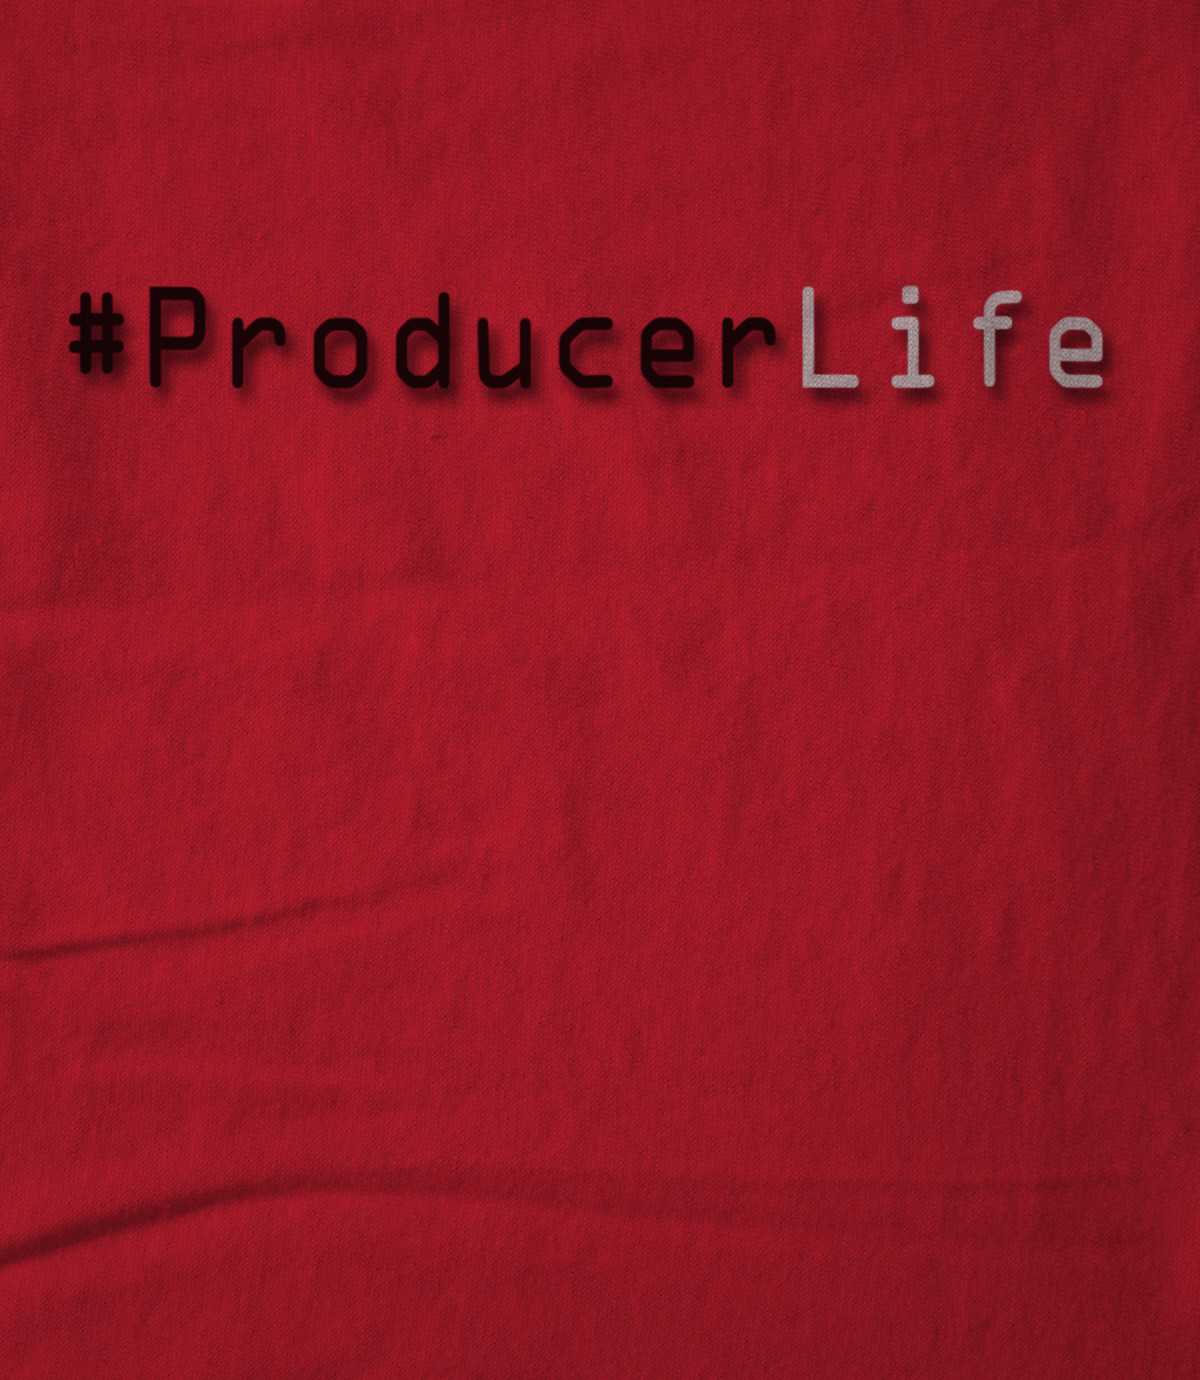 Tmsd  producerlife 4 1543862571